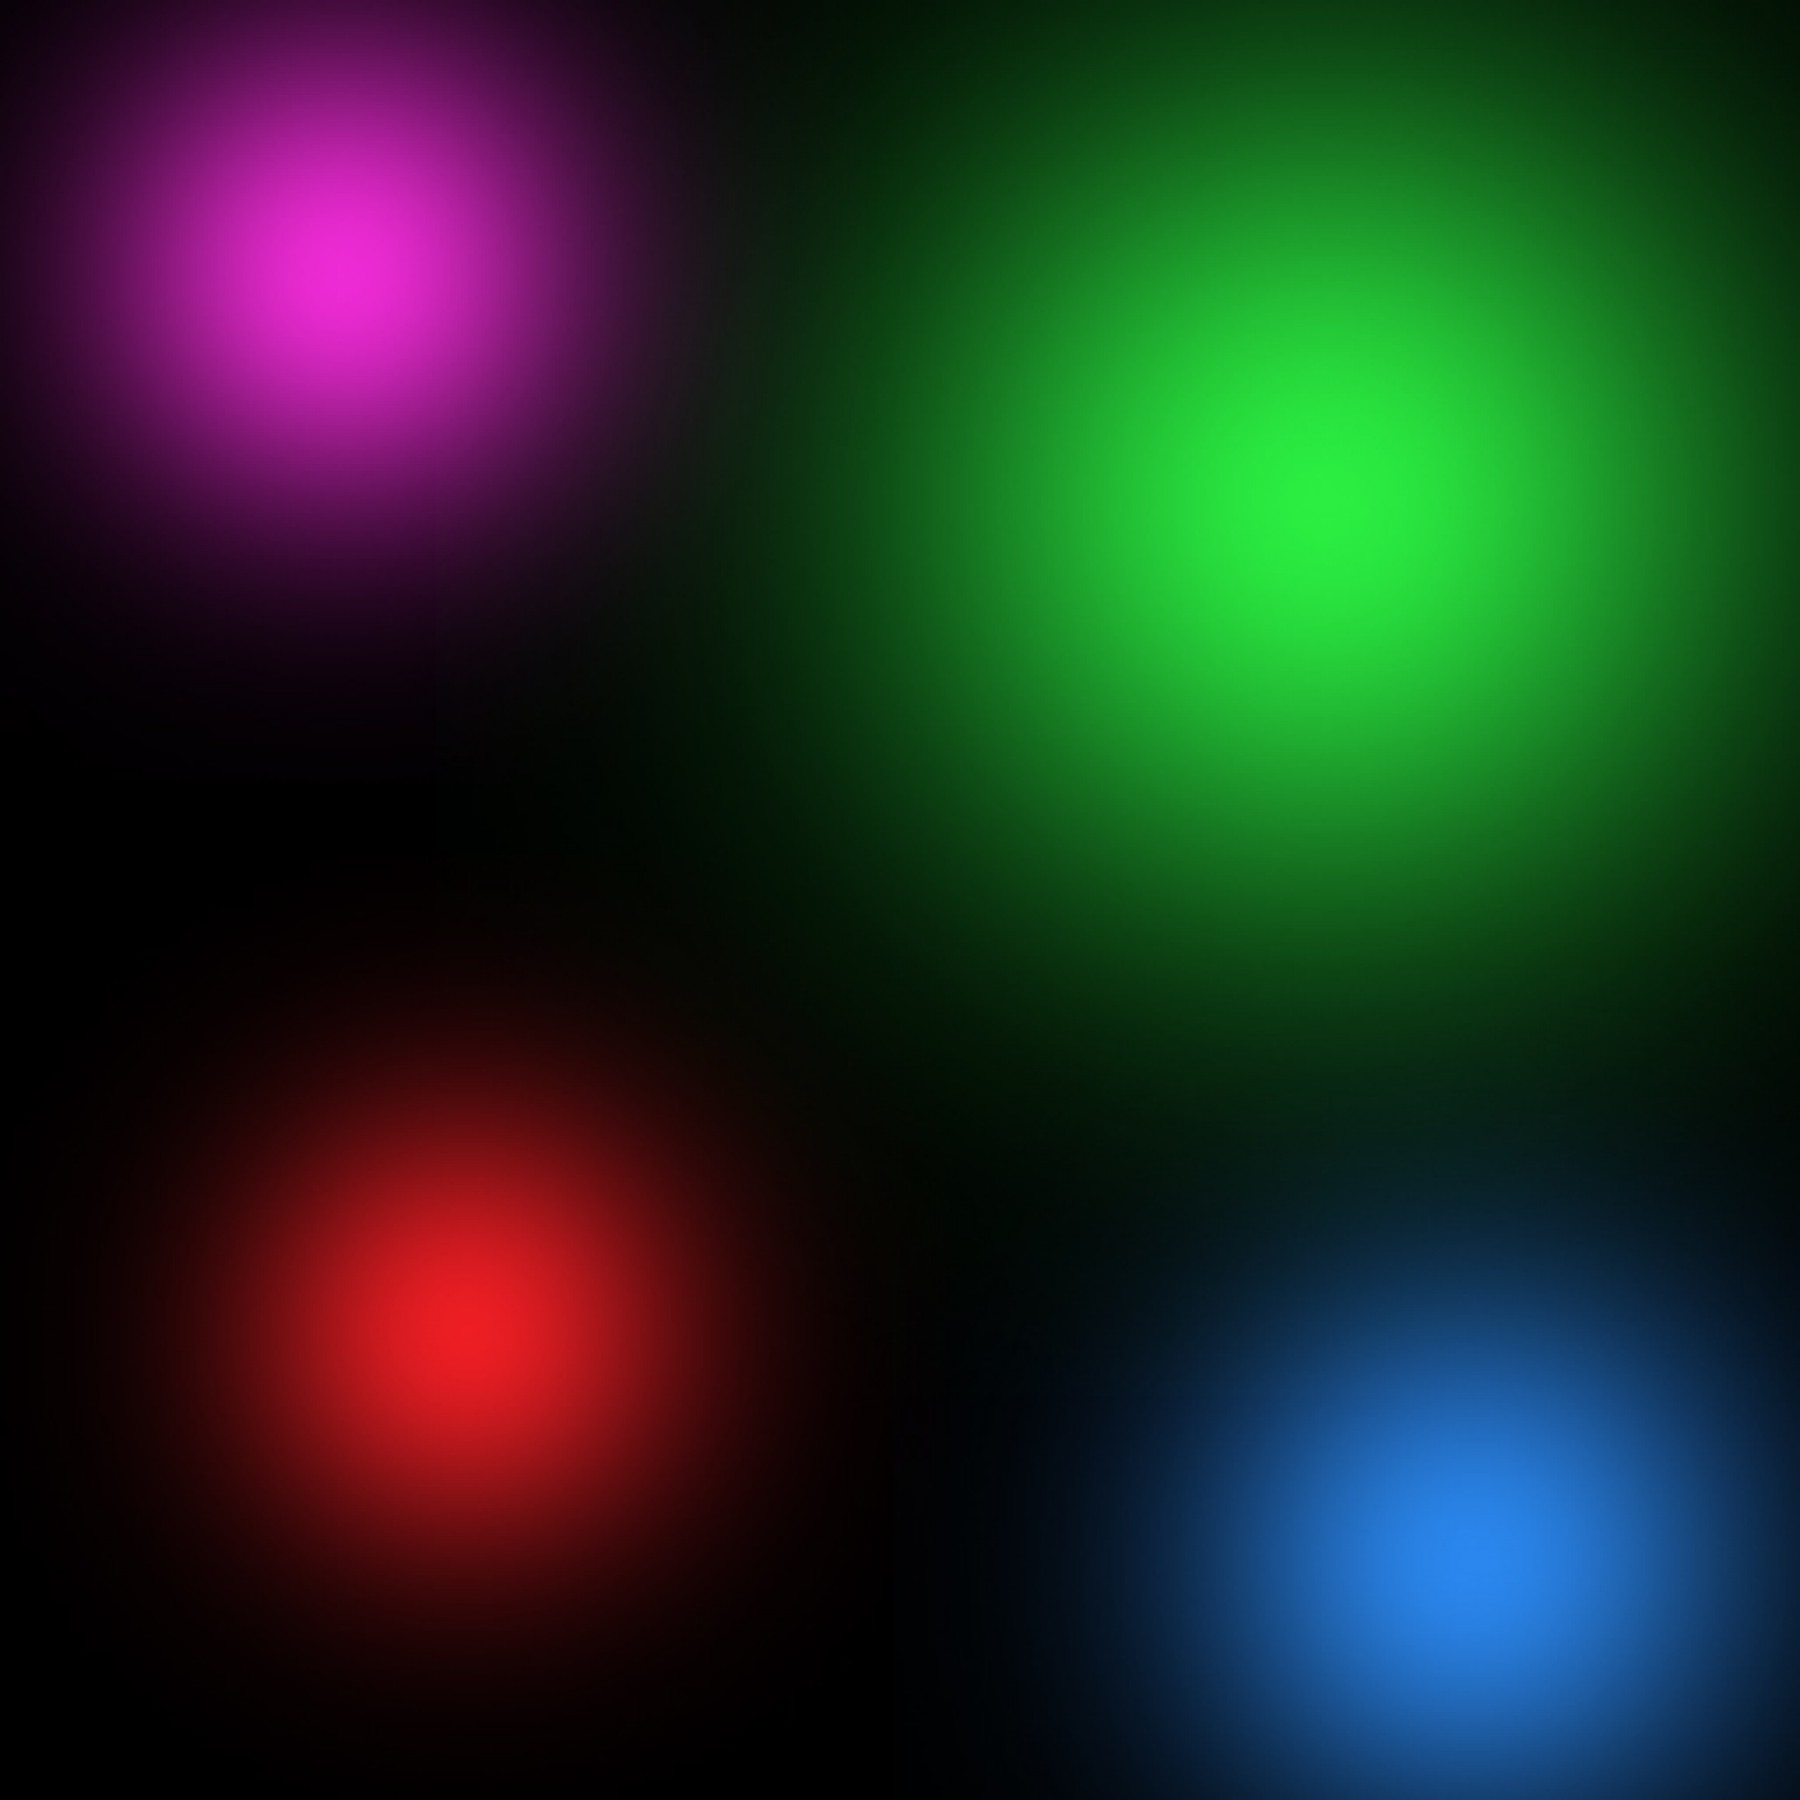 colour-spots-playtime-active-kids-adults-relaxation-surreal-sensory-main-location1